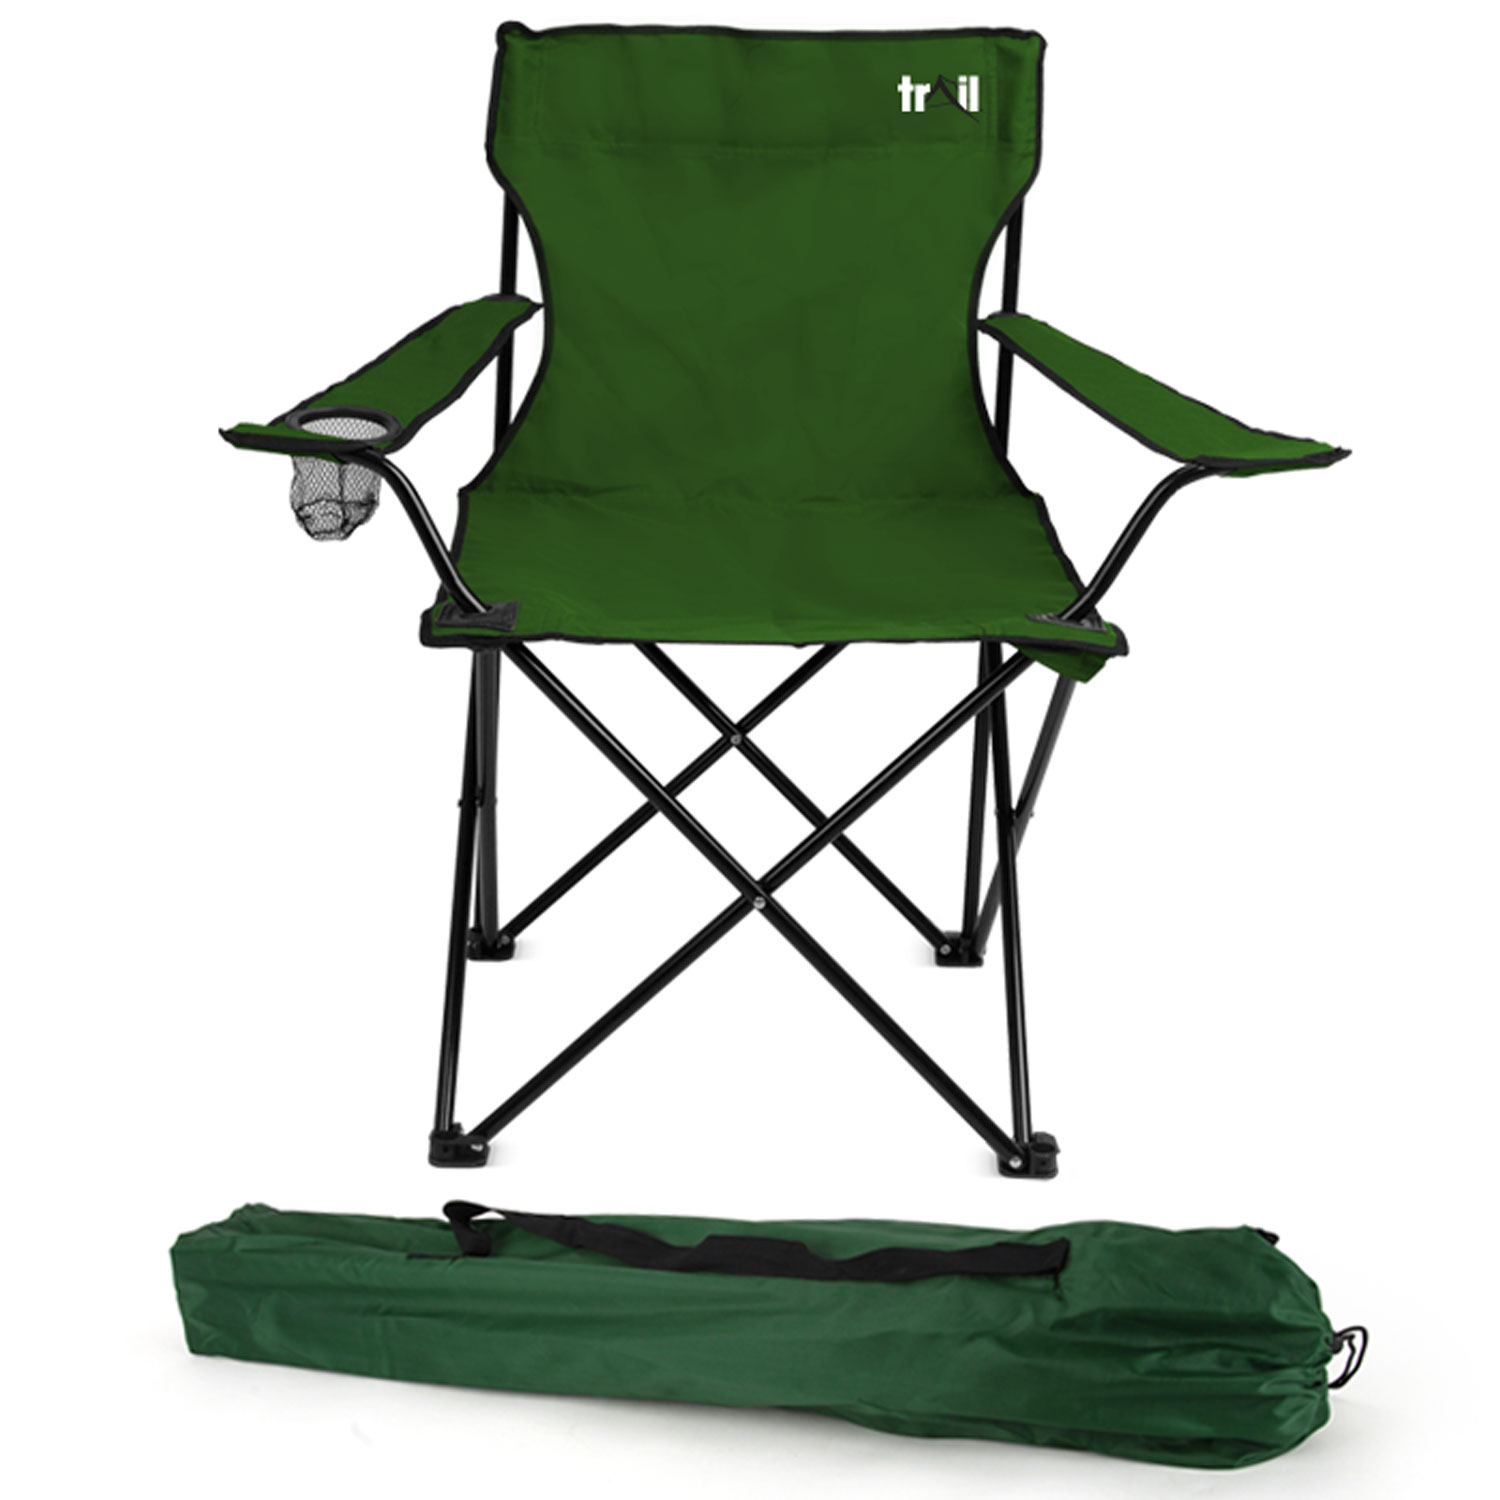 Folding Foldable Camping Beach Chair Fold Up Camp Festival